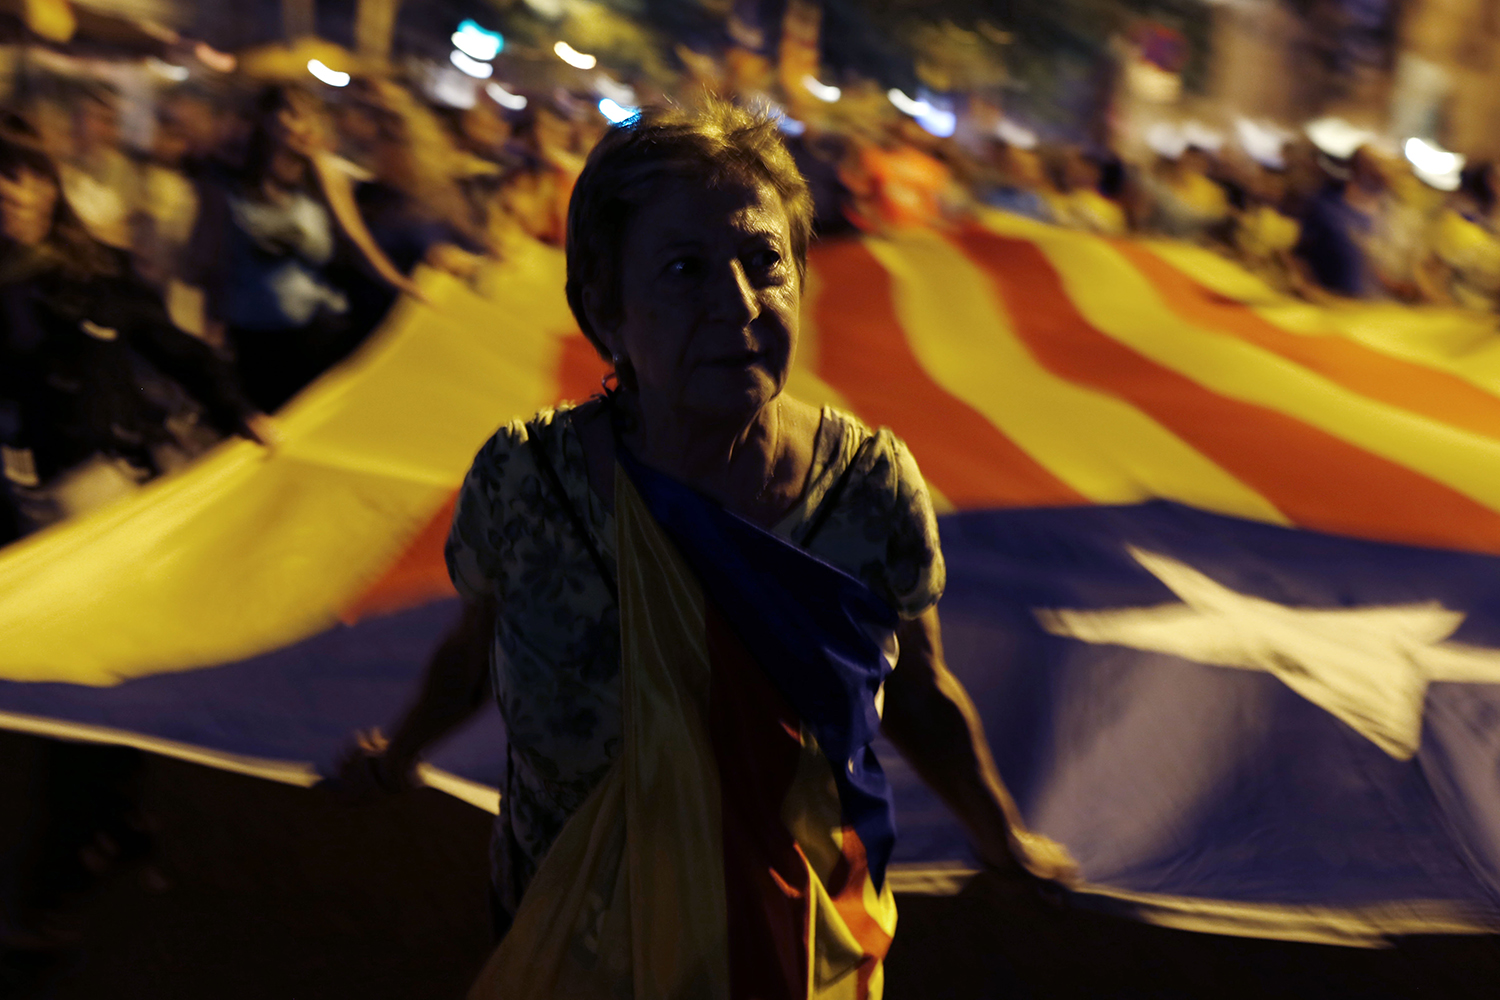 A demonstrator pulls a giant Catalan pro-independence flag during a protest marking the second anniversary of a banned independence referendum in Barcelona on Oct. 1. PAU BARRENA/AFP via Getty Images